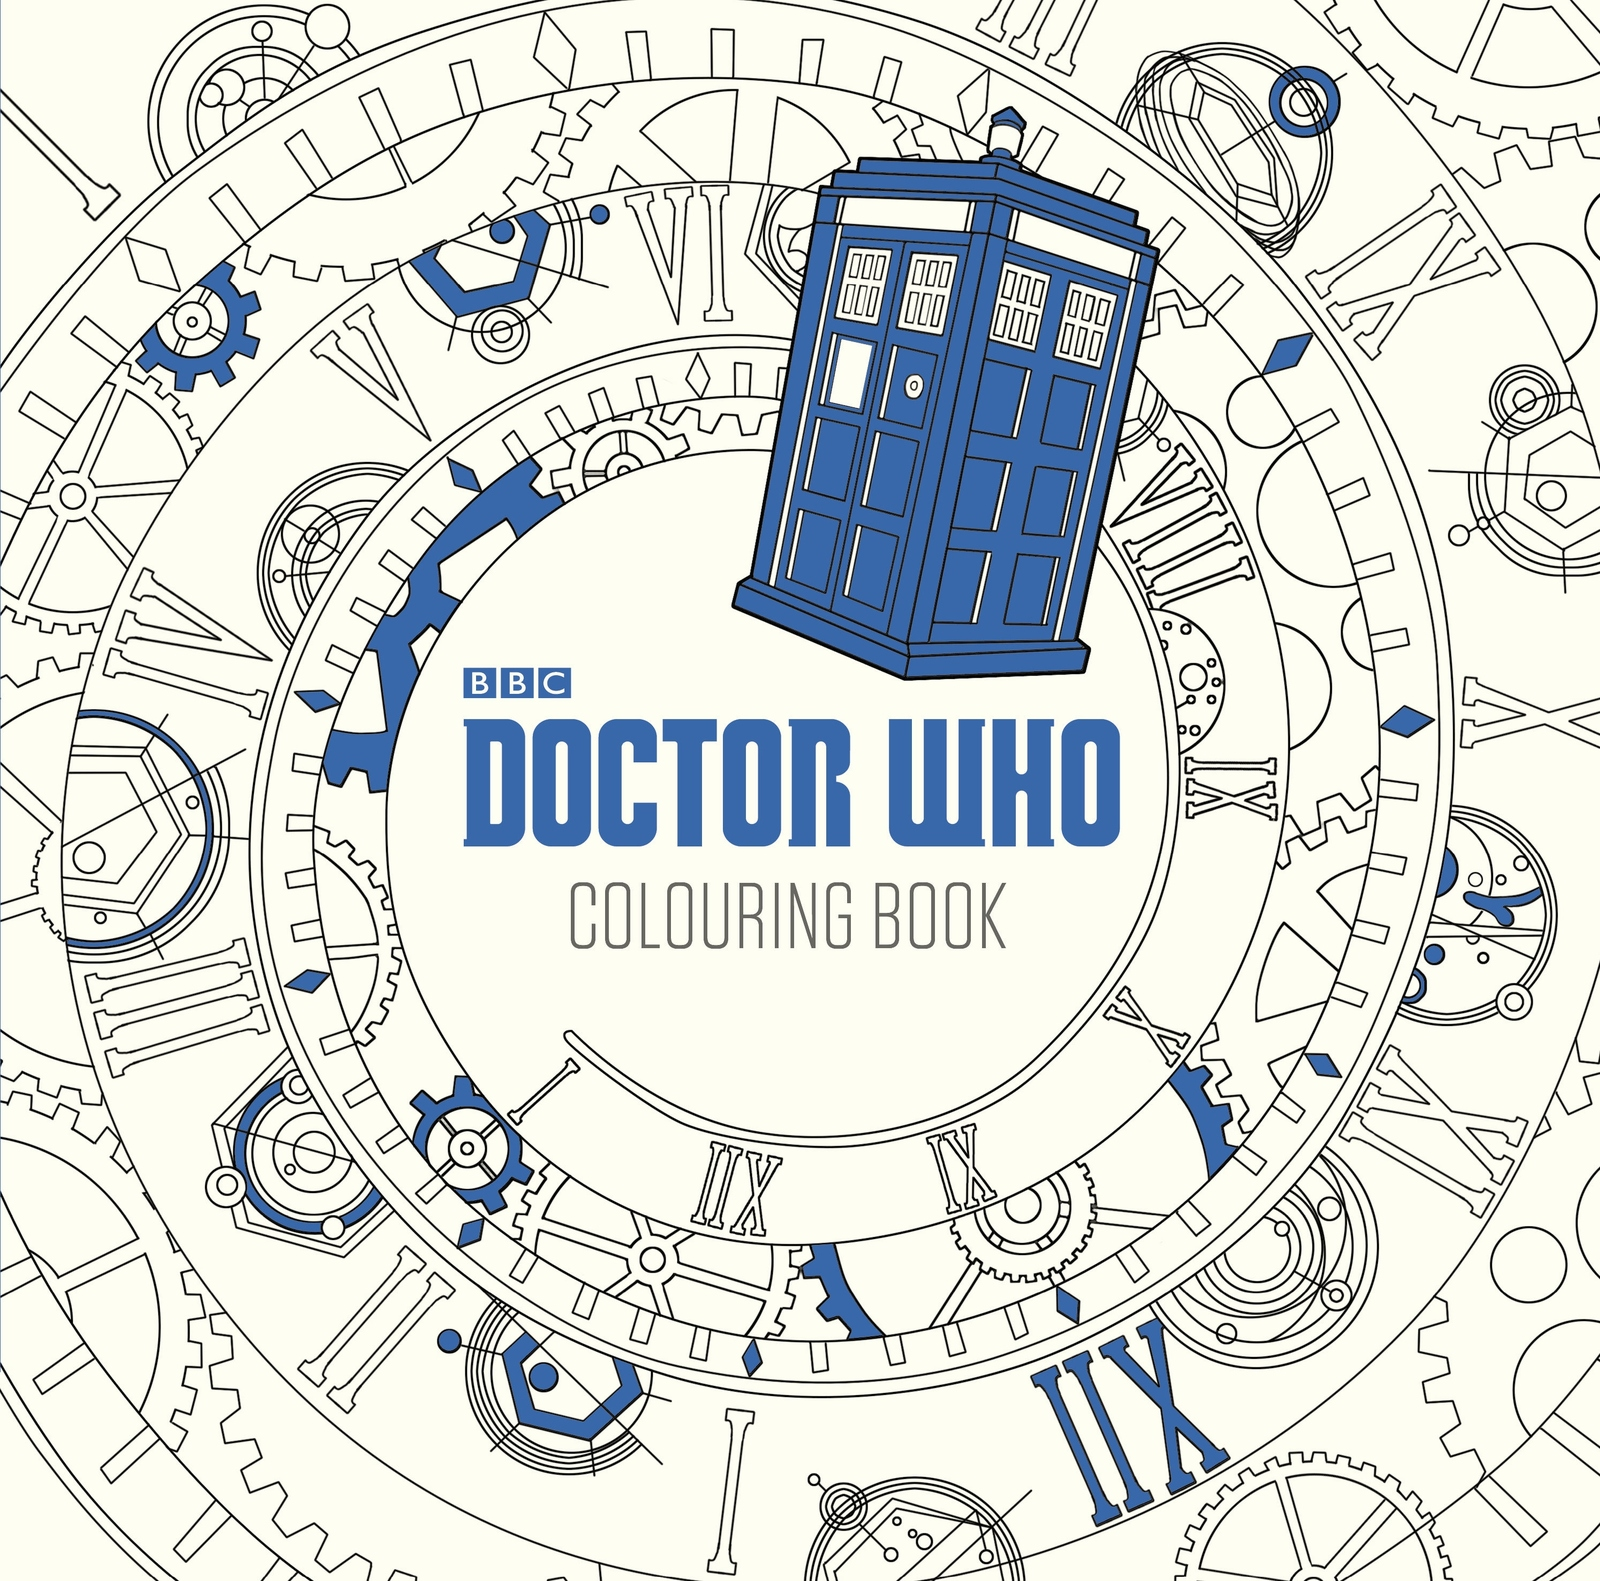 Swearing colouring in book nz - Doctor Who The Colouring Book